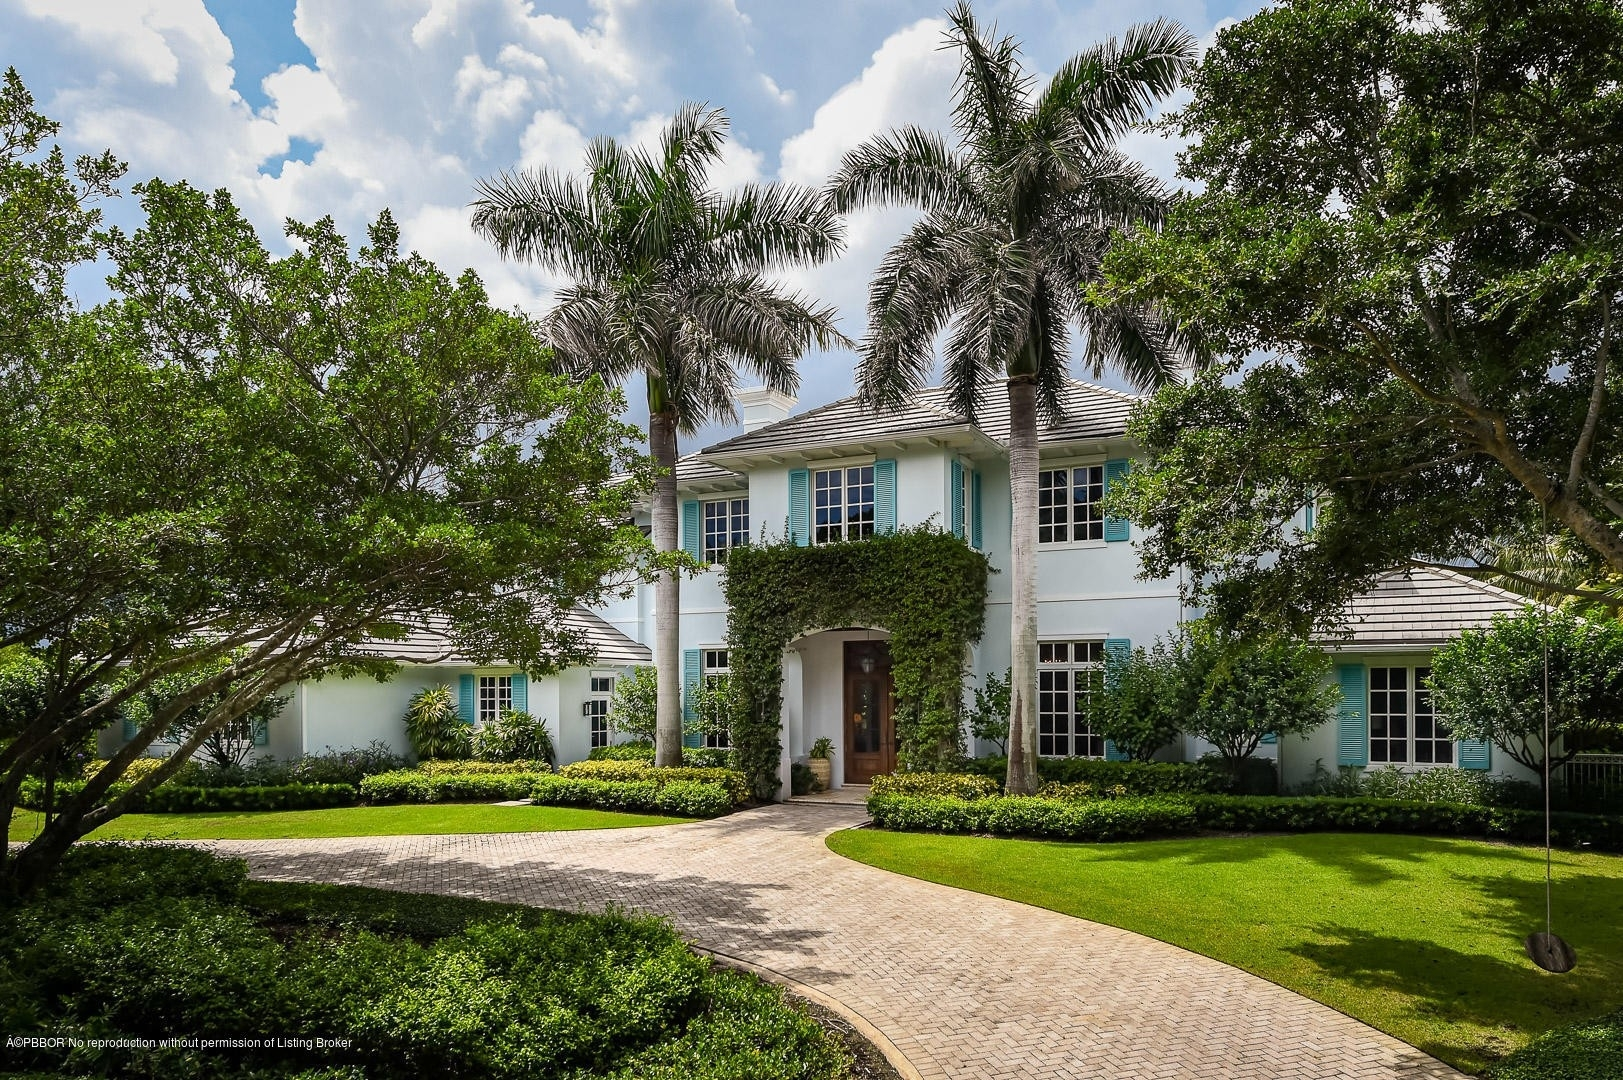 Single Family Home for Sale at Old Port Village, North Palm Beach, FL 33408